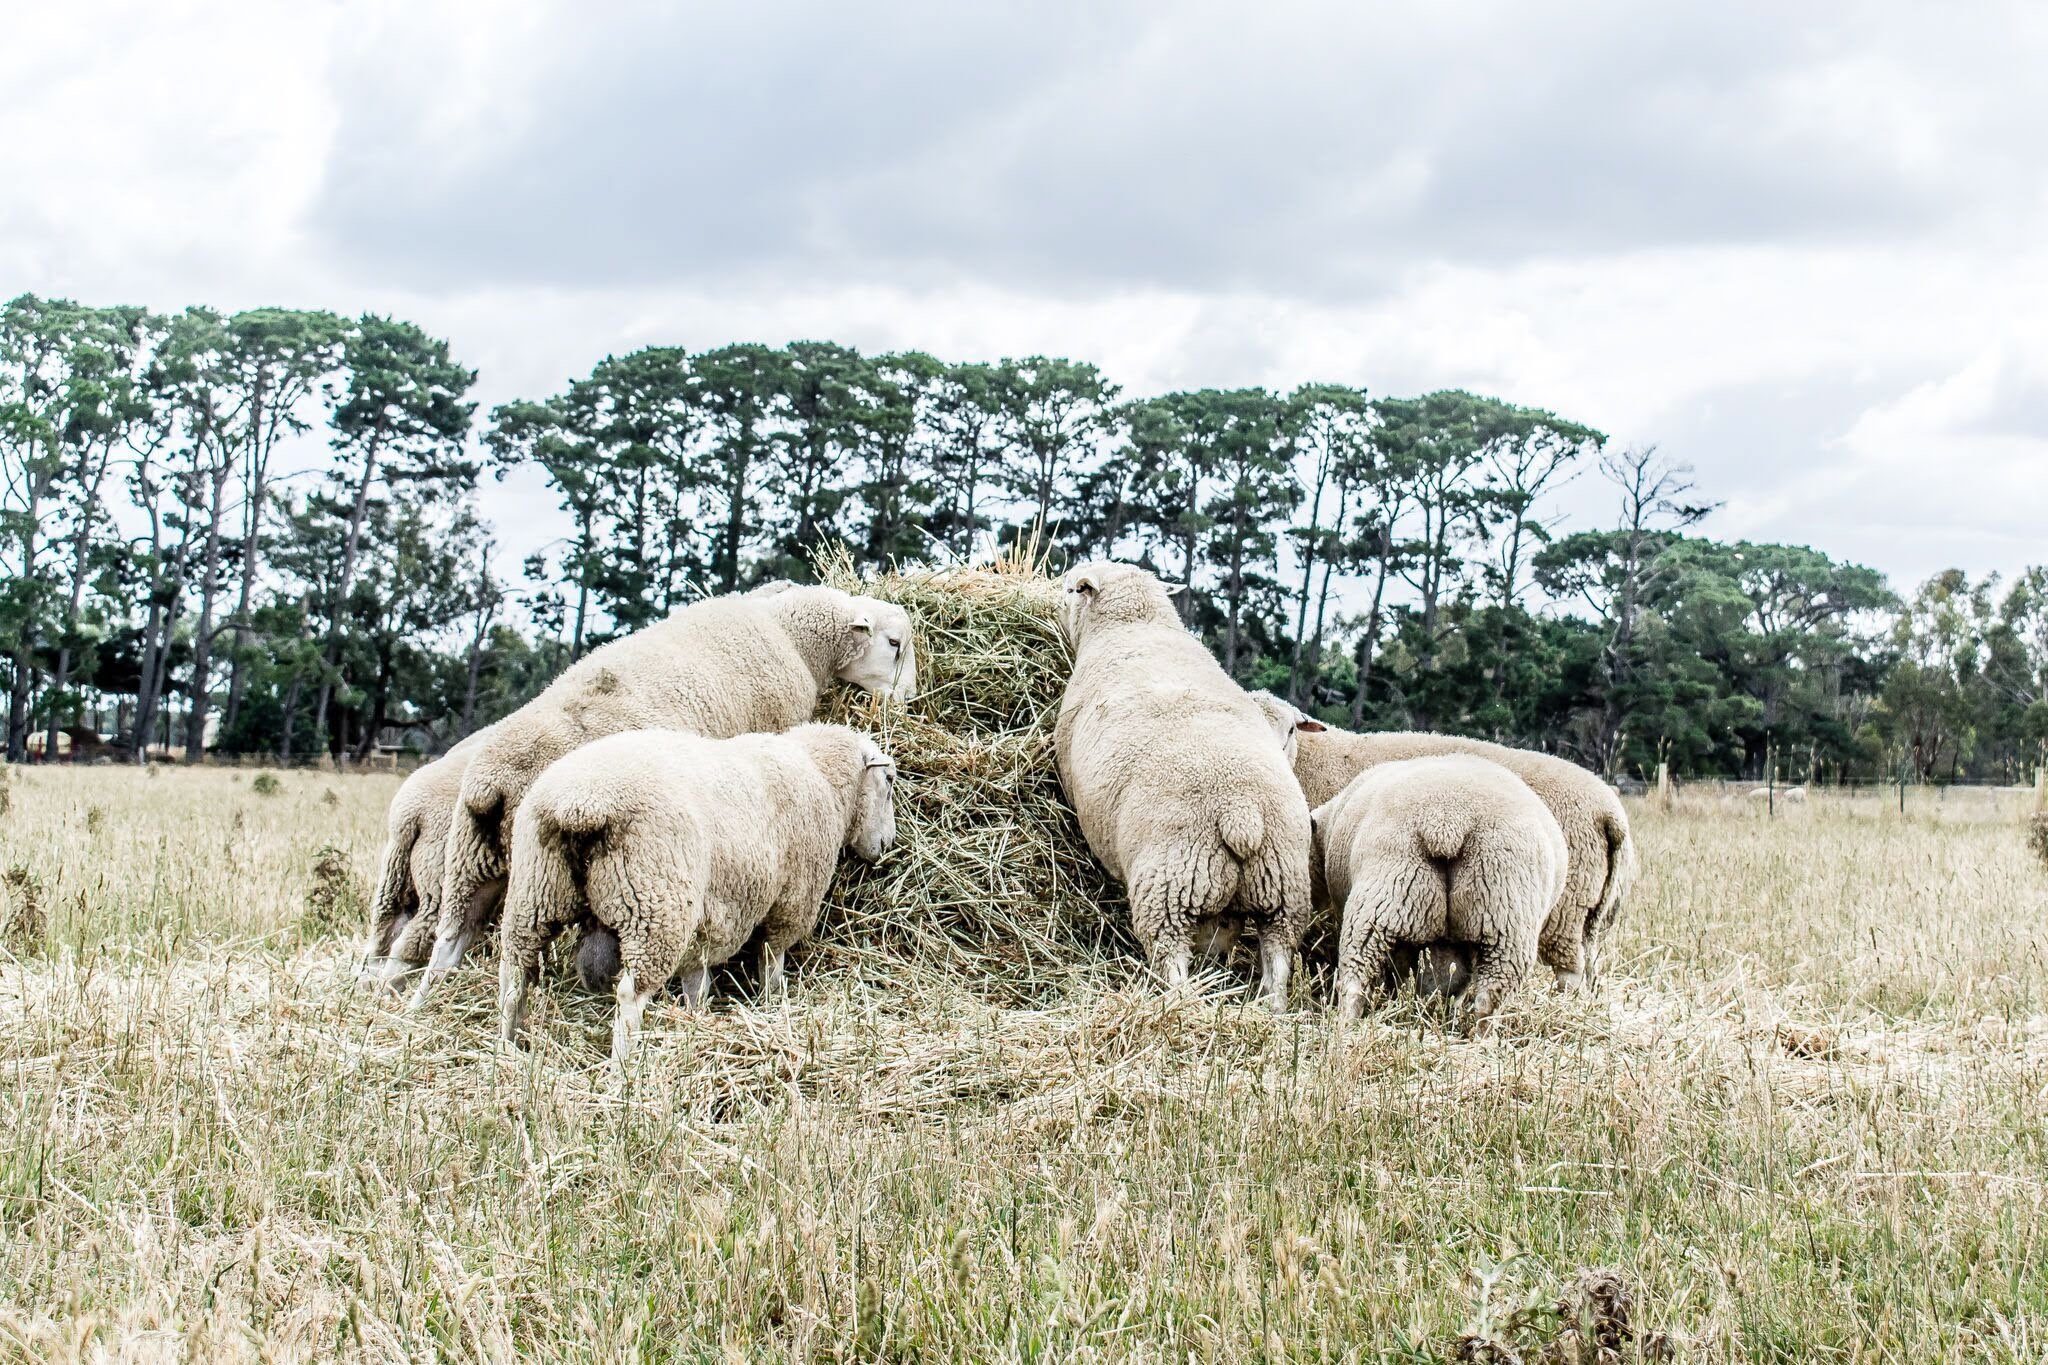 High performance sheep grazing on a mound of fodder